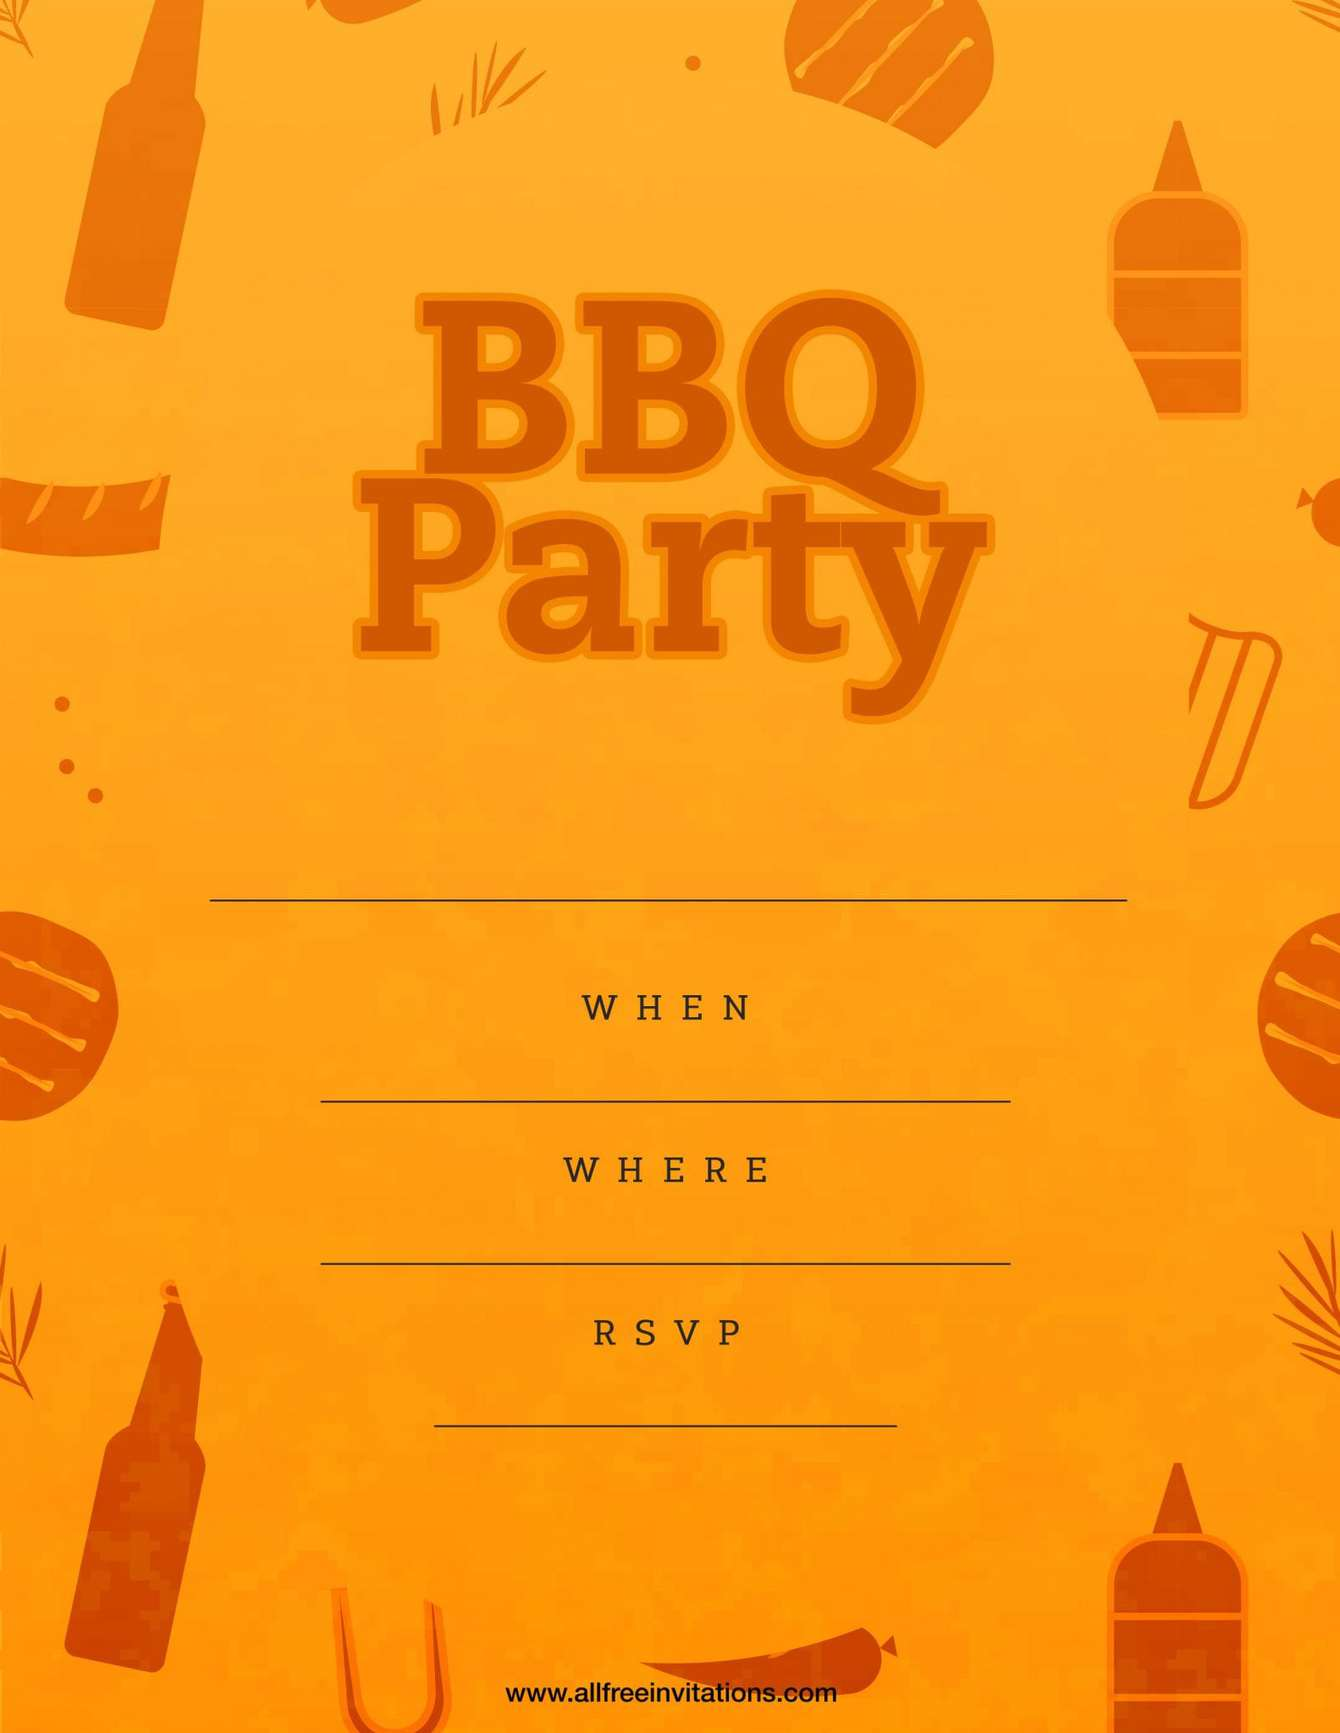 Bbq party invitation funky orange design